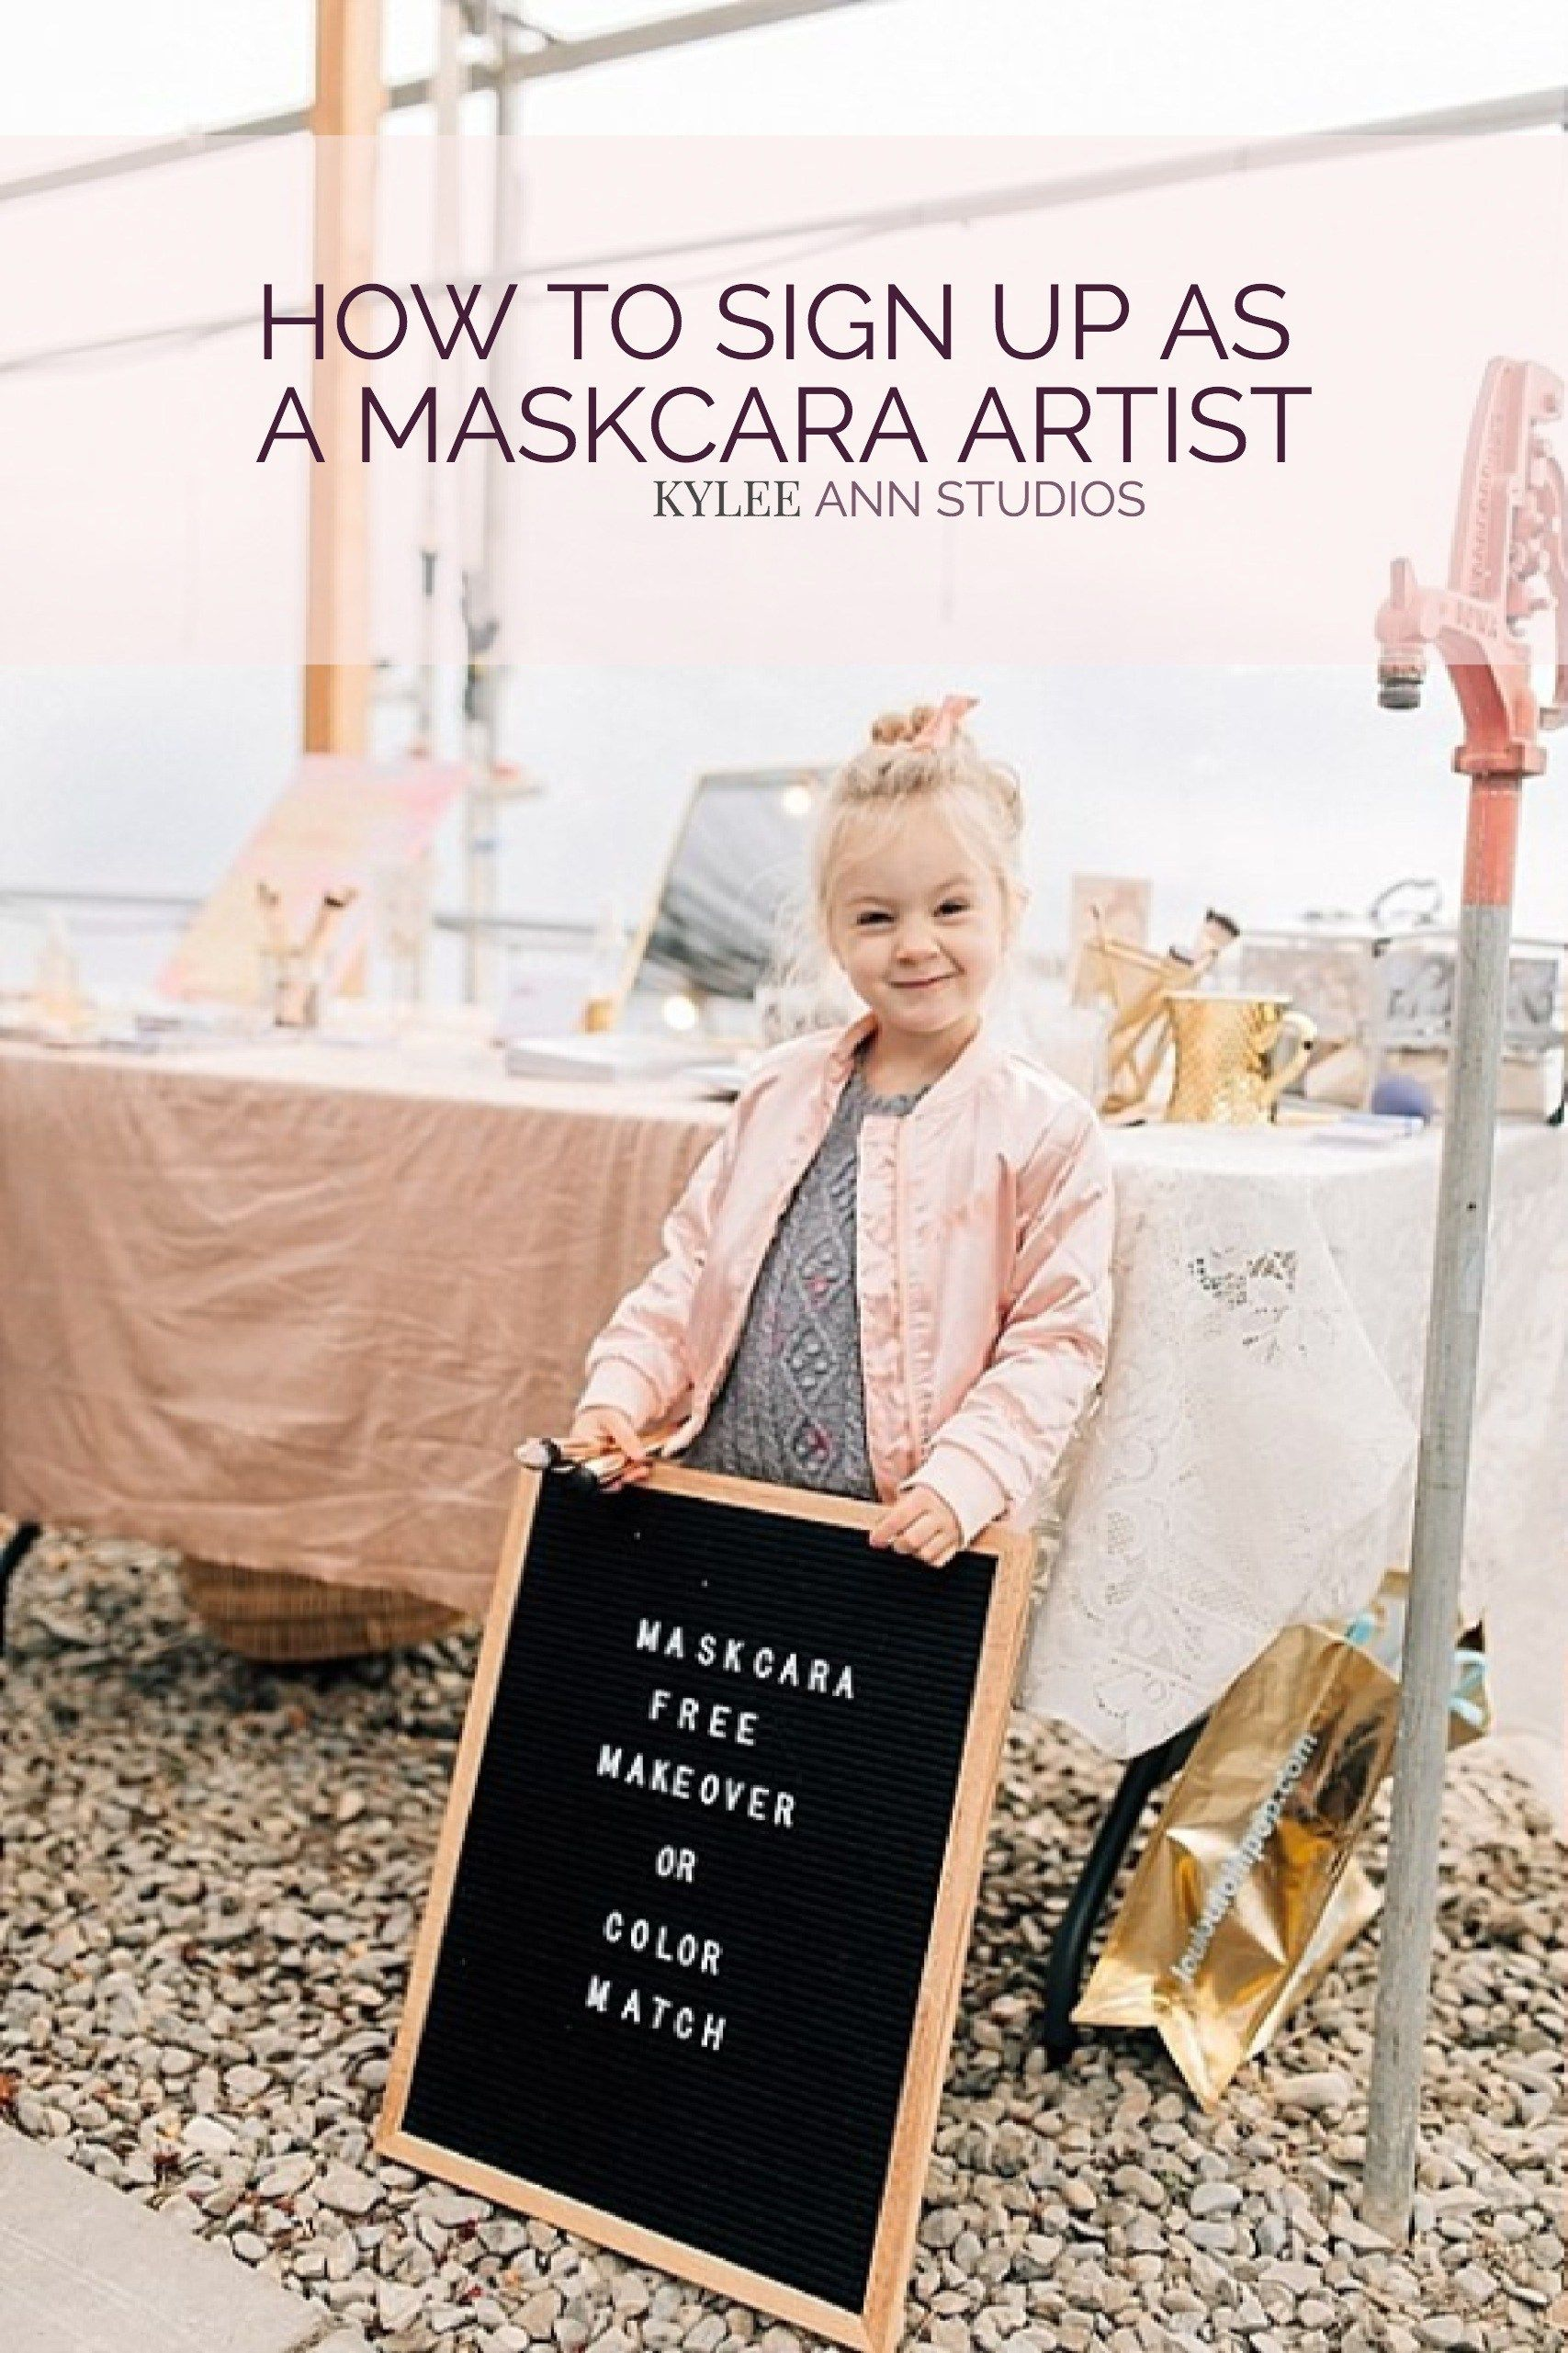 How to Sign Up as a Maskcara Artist with Kylee Ann Studios